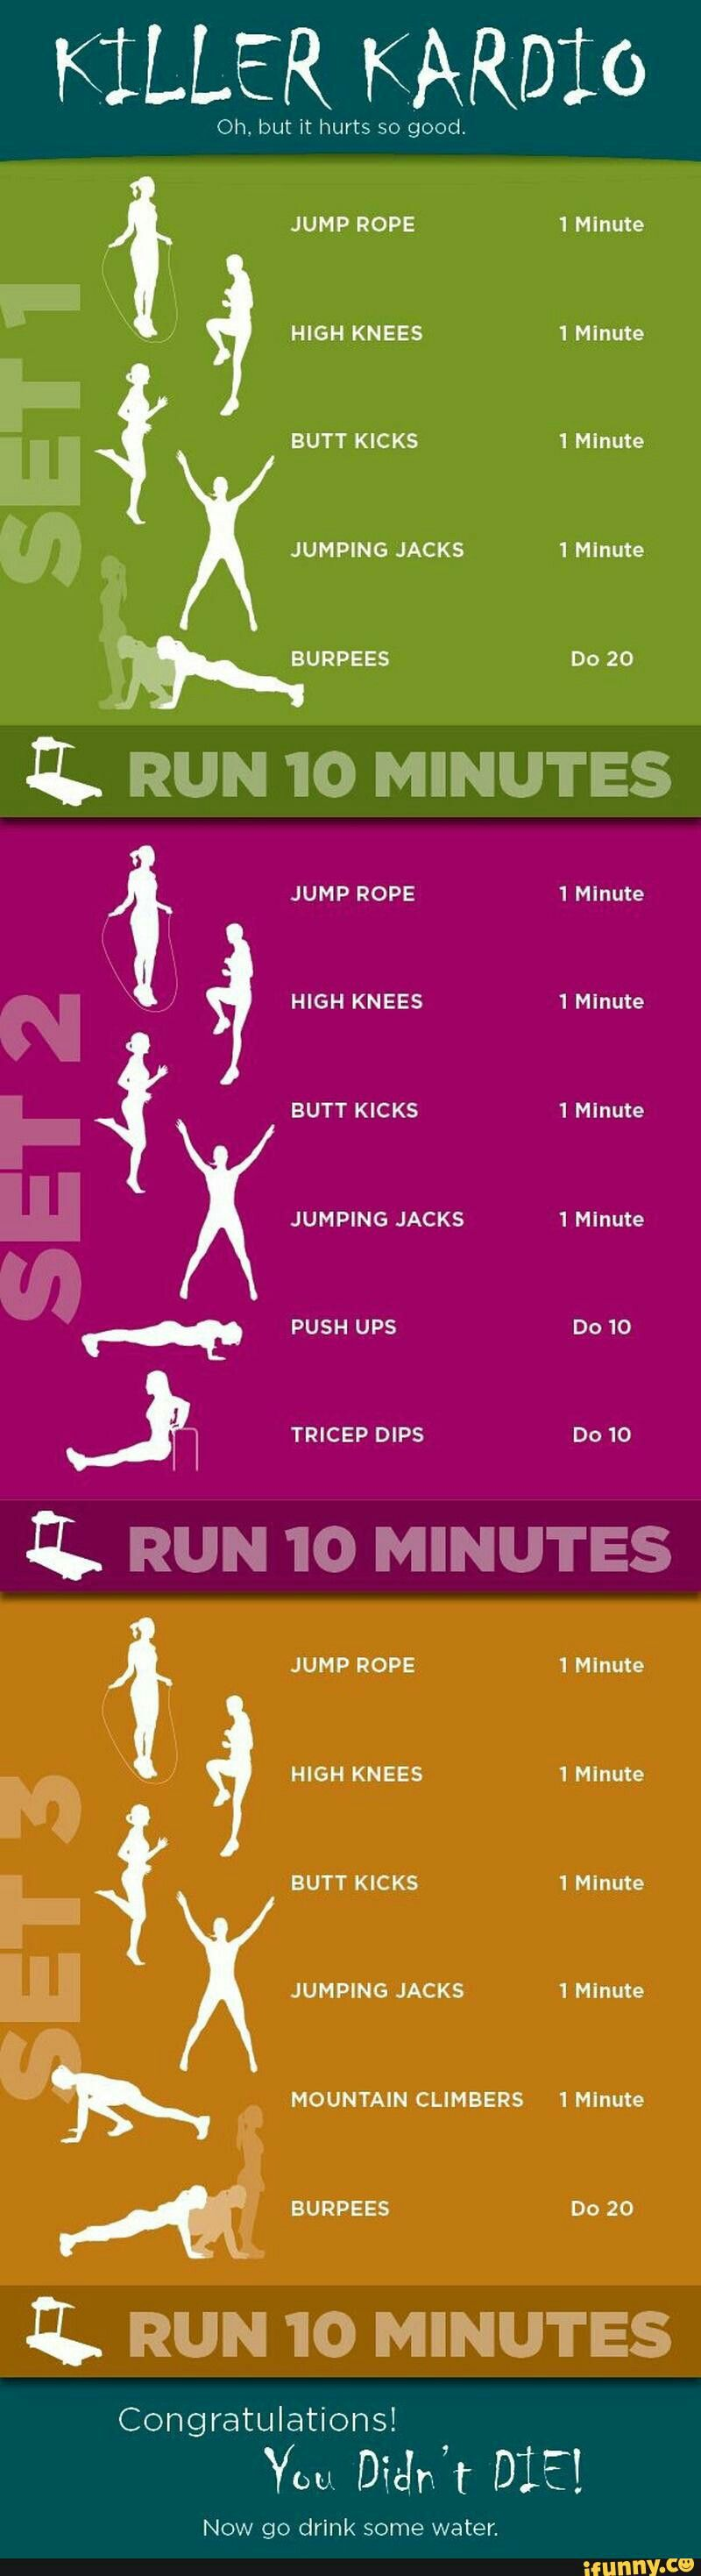 Killer Cardio Workout About One Hour